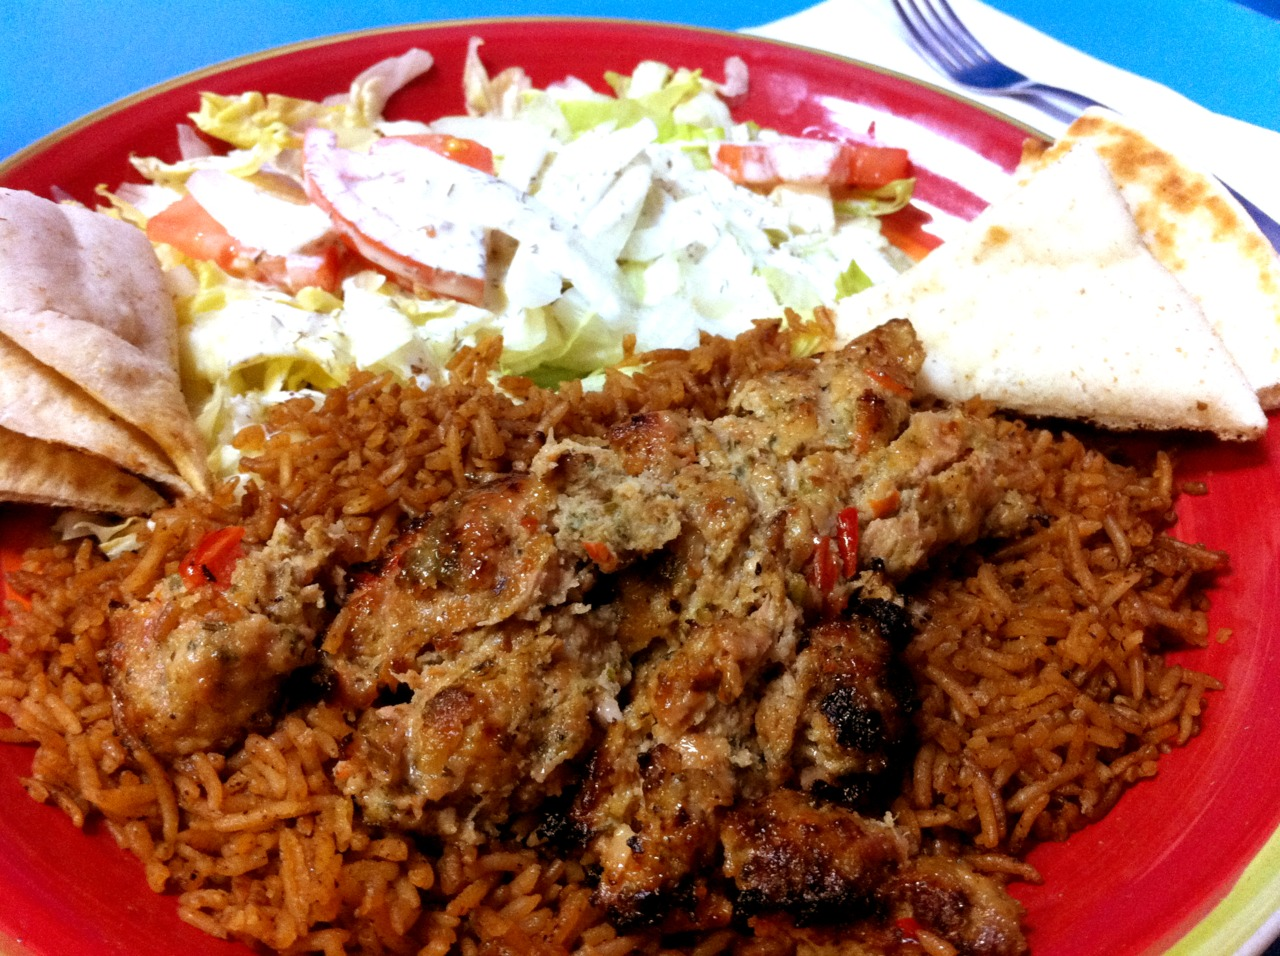 Chicken Adana with Basmati @ Kebab Shack, Norfolk, VA.   Kebab Shack is located in the former Zero's Subs store-front on Granby St. If you know me, you know I rave about this place. The food is good and the guys in the kitchen are friendly. If you want to try something different, give it a shot.